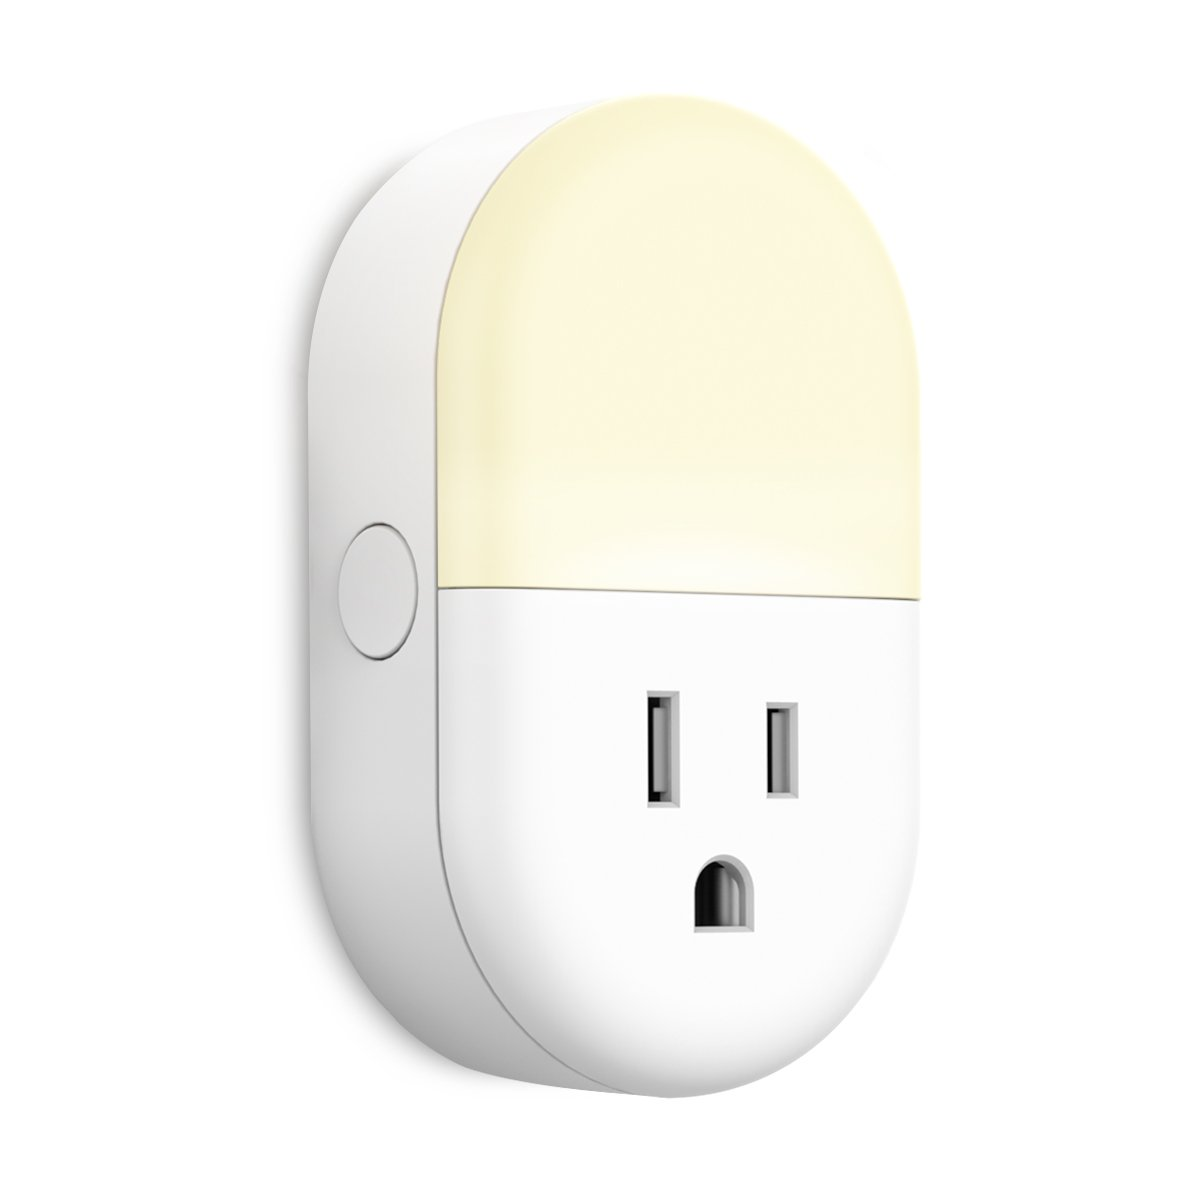 Smart Plug works with Alexa, iMah Smart Plug with Night Light, Smart Outlets that work with Alexa Google Assistant IFTTT, WiFi Smart Plug Mini Outlet Socket control your Devices from Anywhere